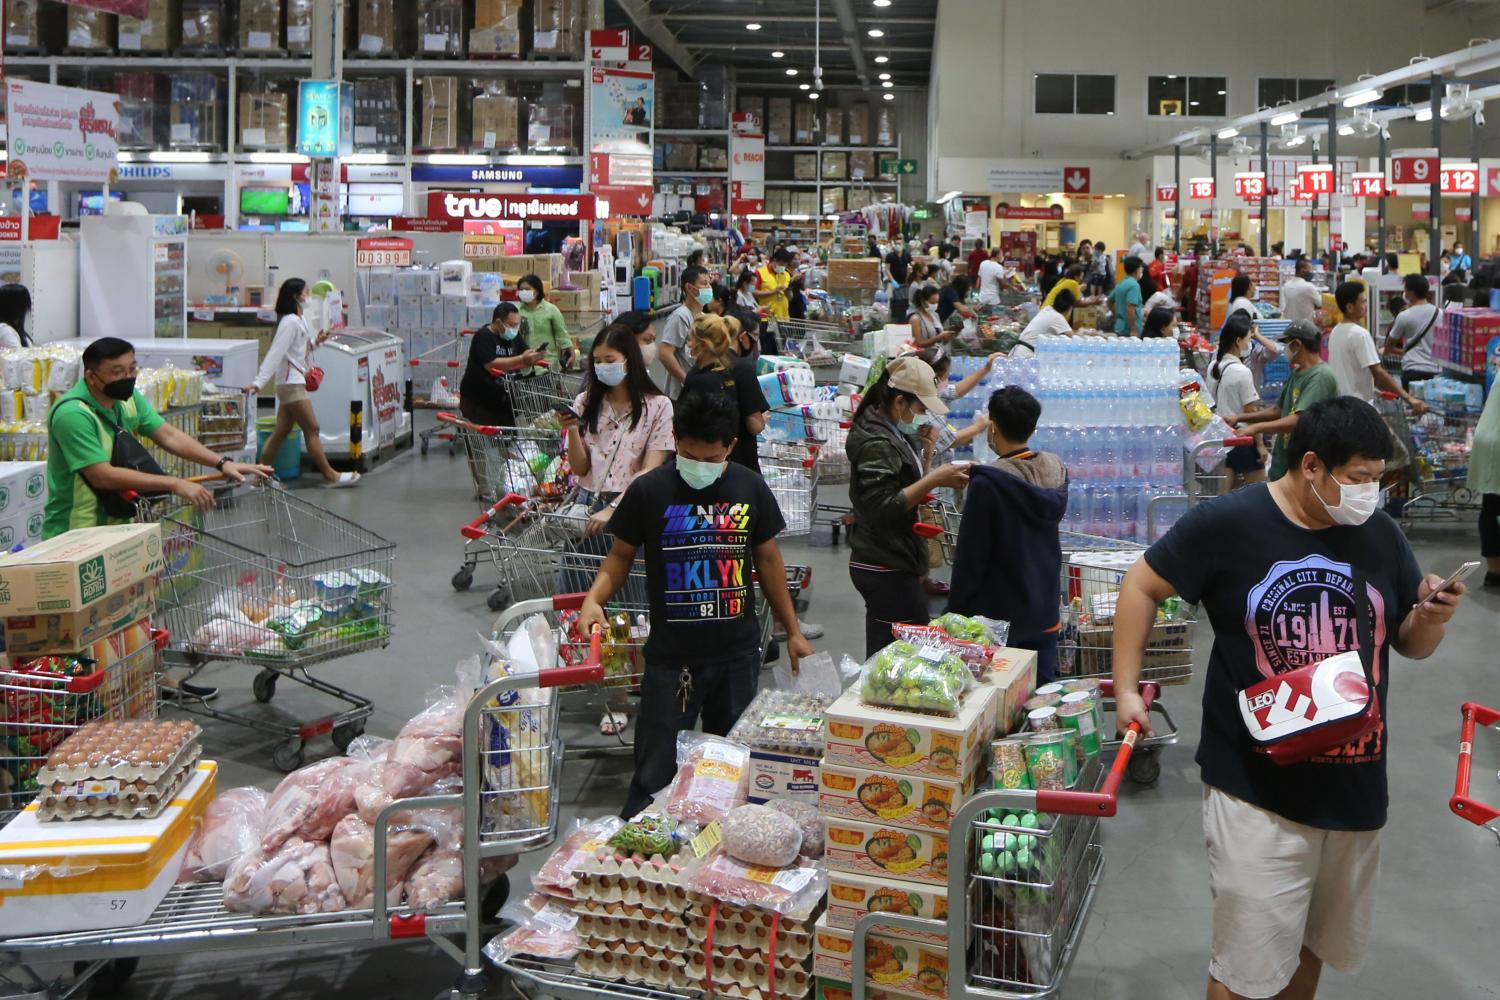 Stocking up: Shoppers form long queues at the Makro wholesale store in Samut Prakan after City Hall yesterday issued an order closing shopping malls and markets in Bangkok and adjacent provinces except those selling food and essential consumer goods for three weeks in an effort to slow the spread of Covid-19.